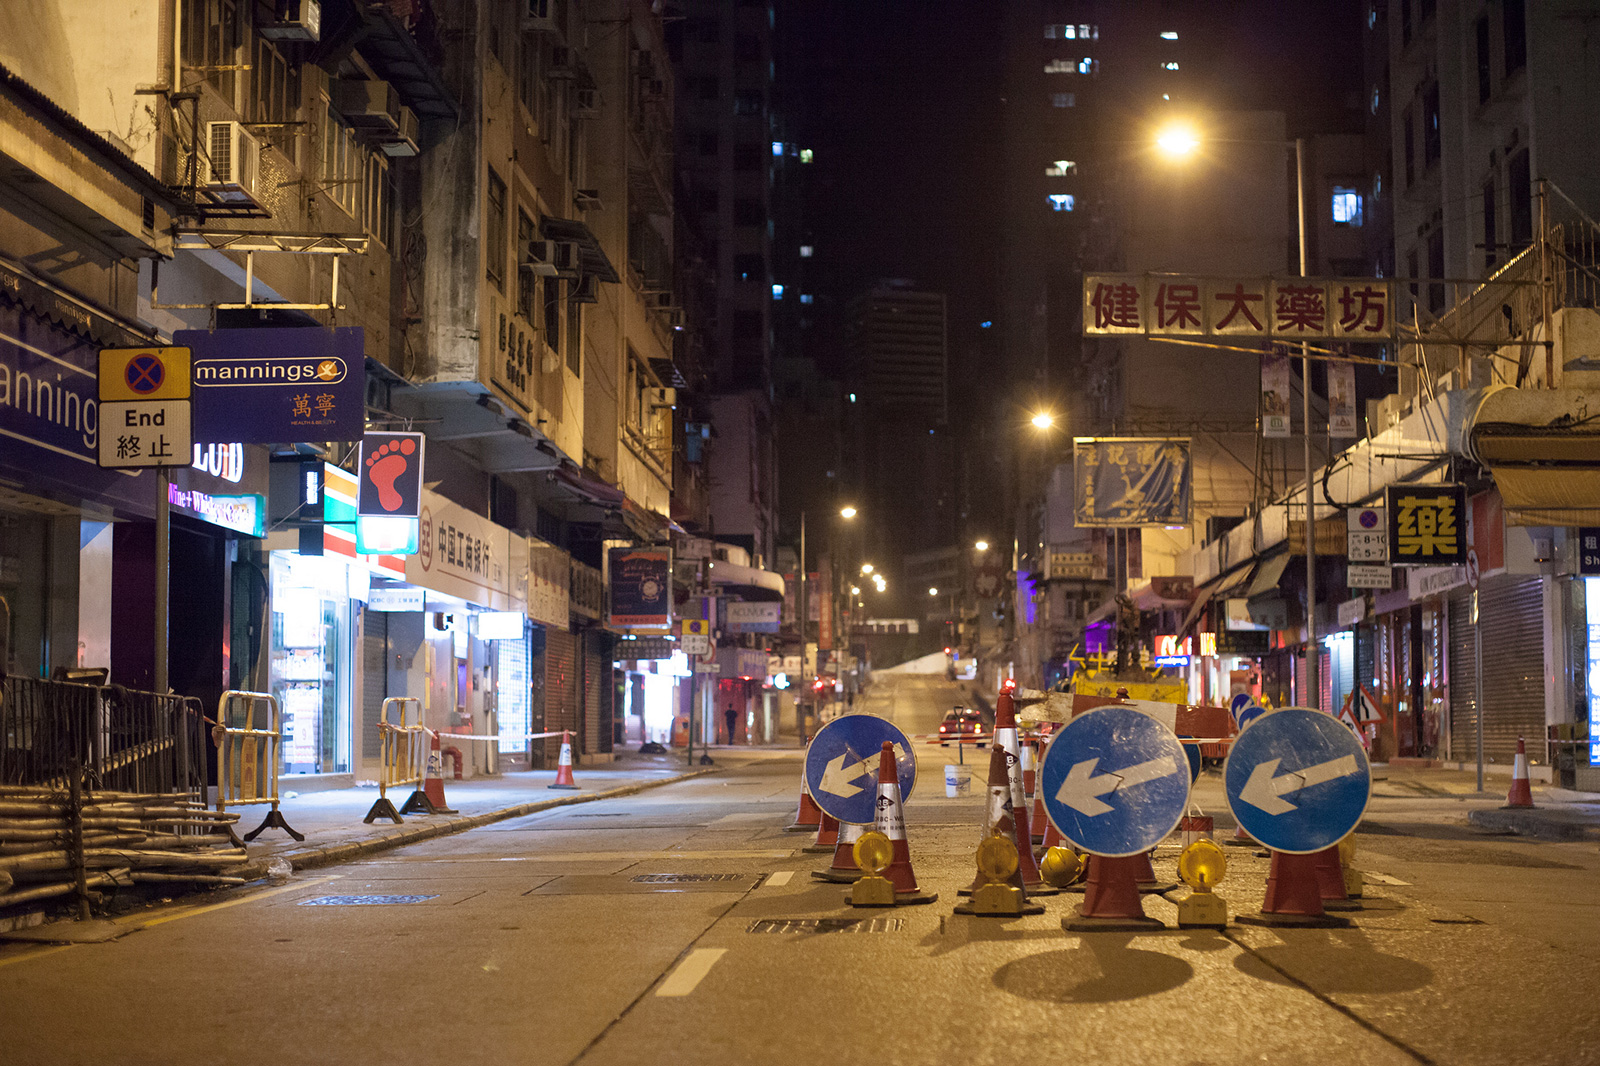 Road maintenance in Sai Ying Pun (Photo: Jens Schott Knudsen/Flickr)